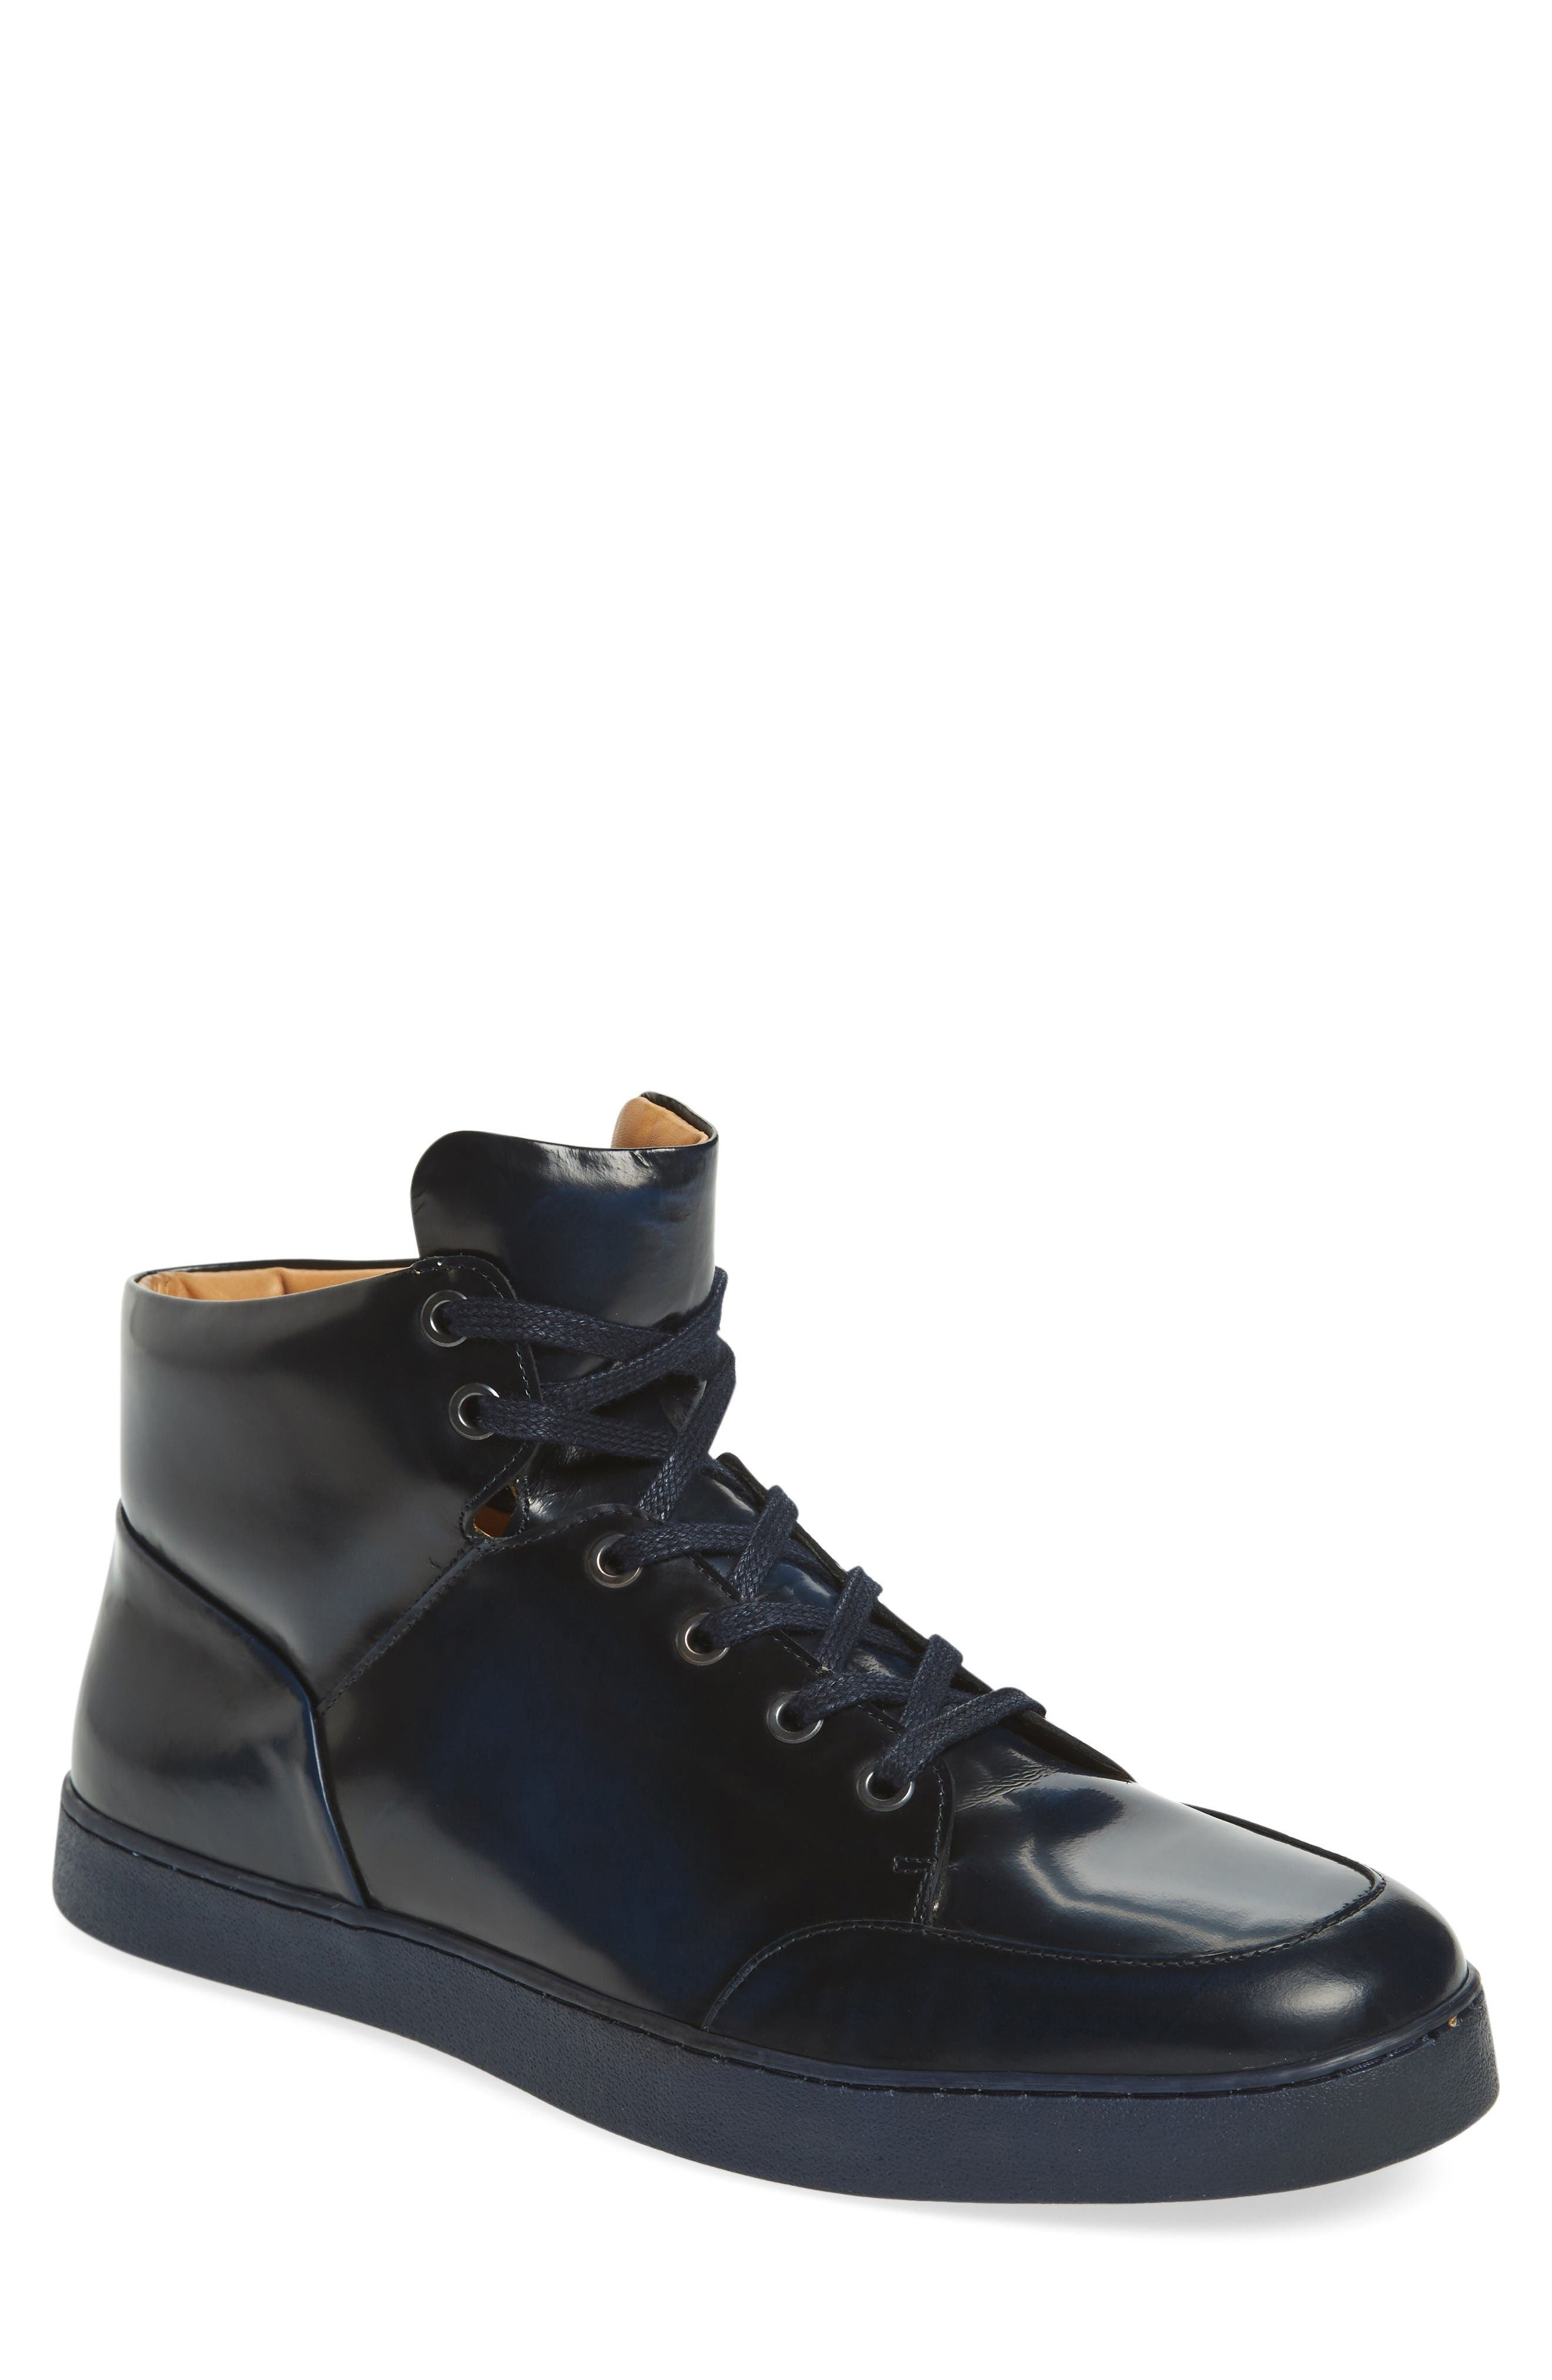 Gidean High Top Sneaker,                             Main thumbnail 1, color,                             Navy Leather